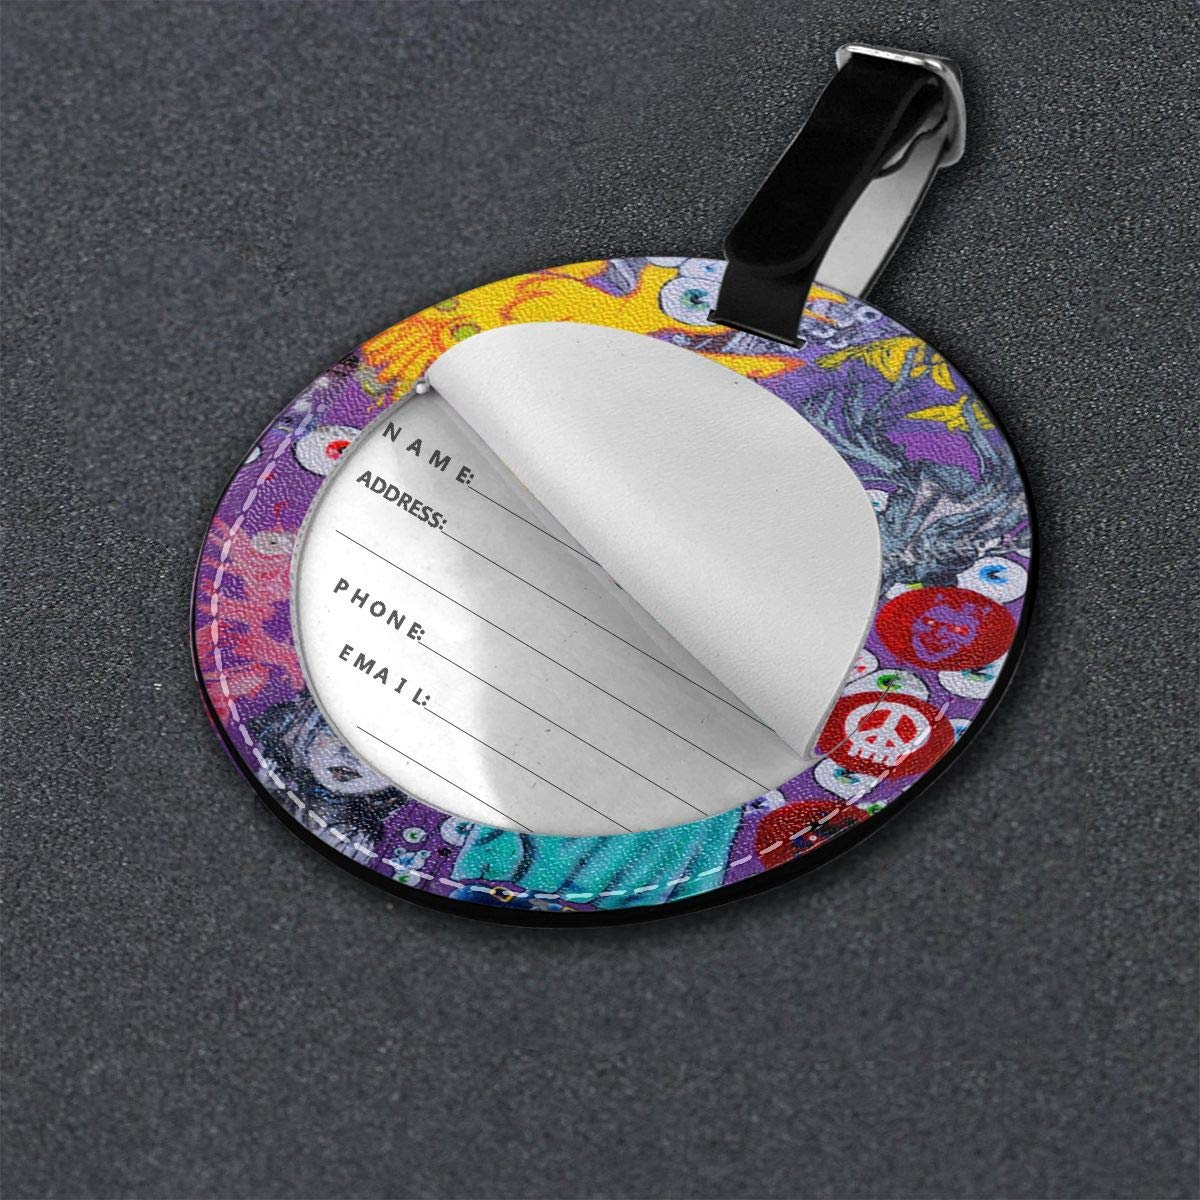 Round Luggage Tags Montreal Canada Street Art Painting Travel Accessories Suitcase Name Tags